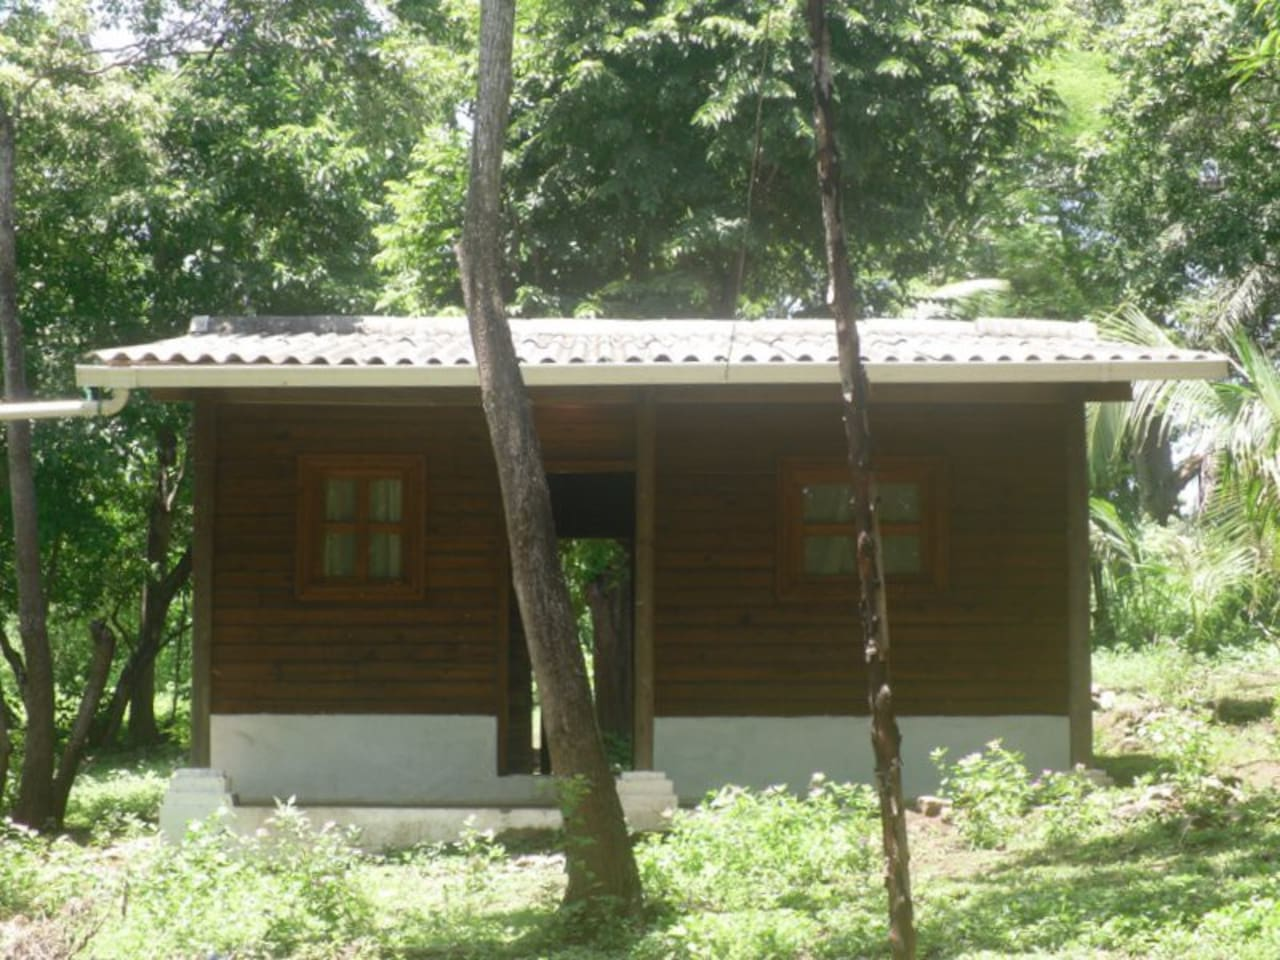 The cabin has three beds, a kitchenette and a separate shower and toilet area.